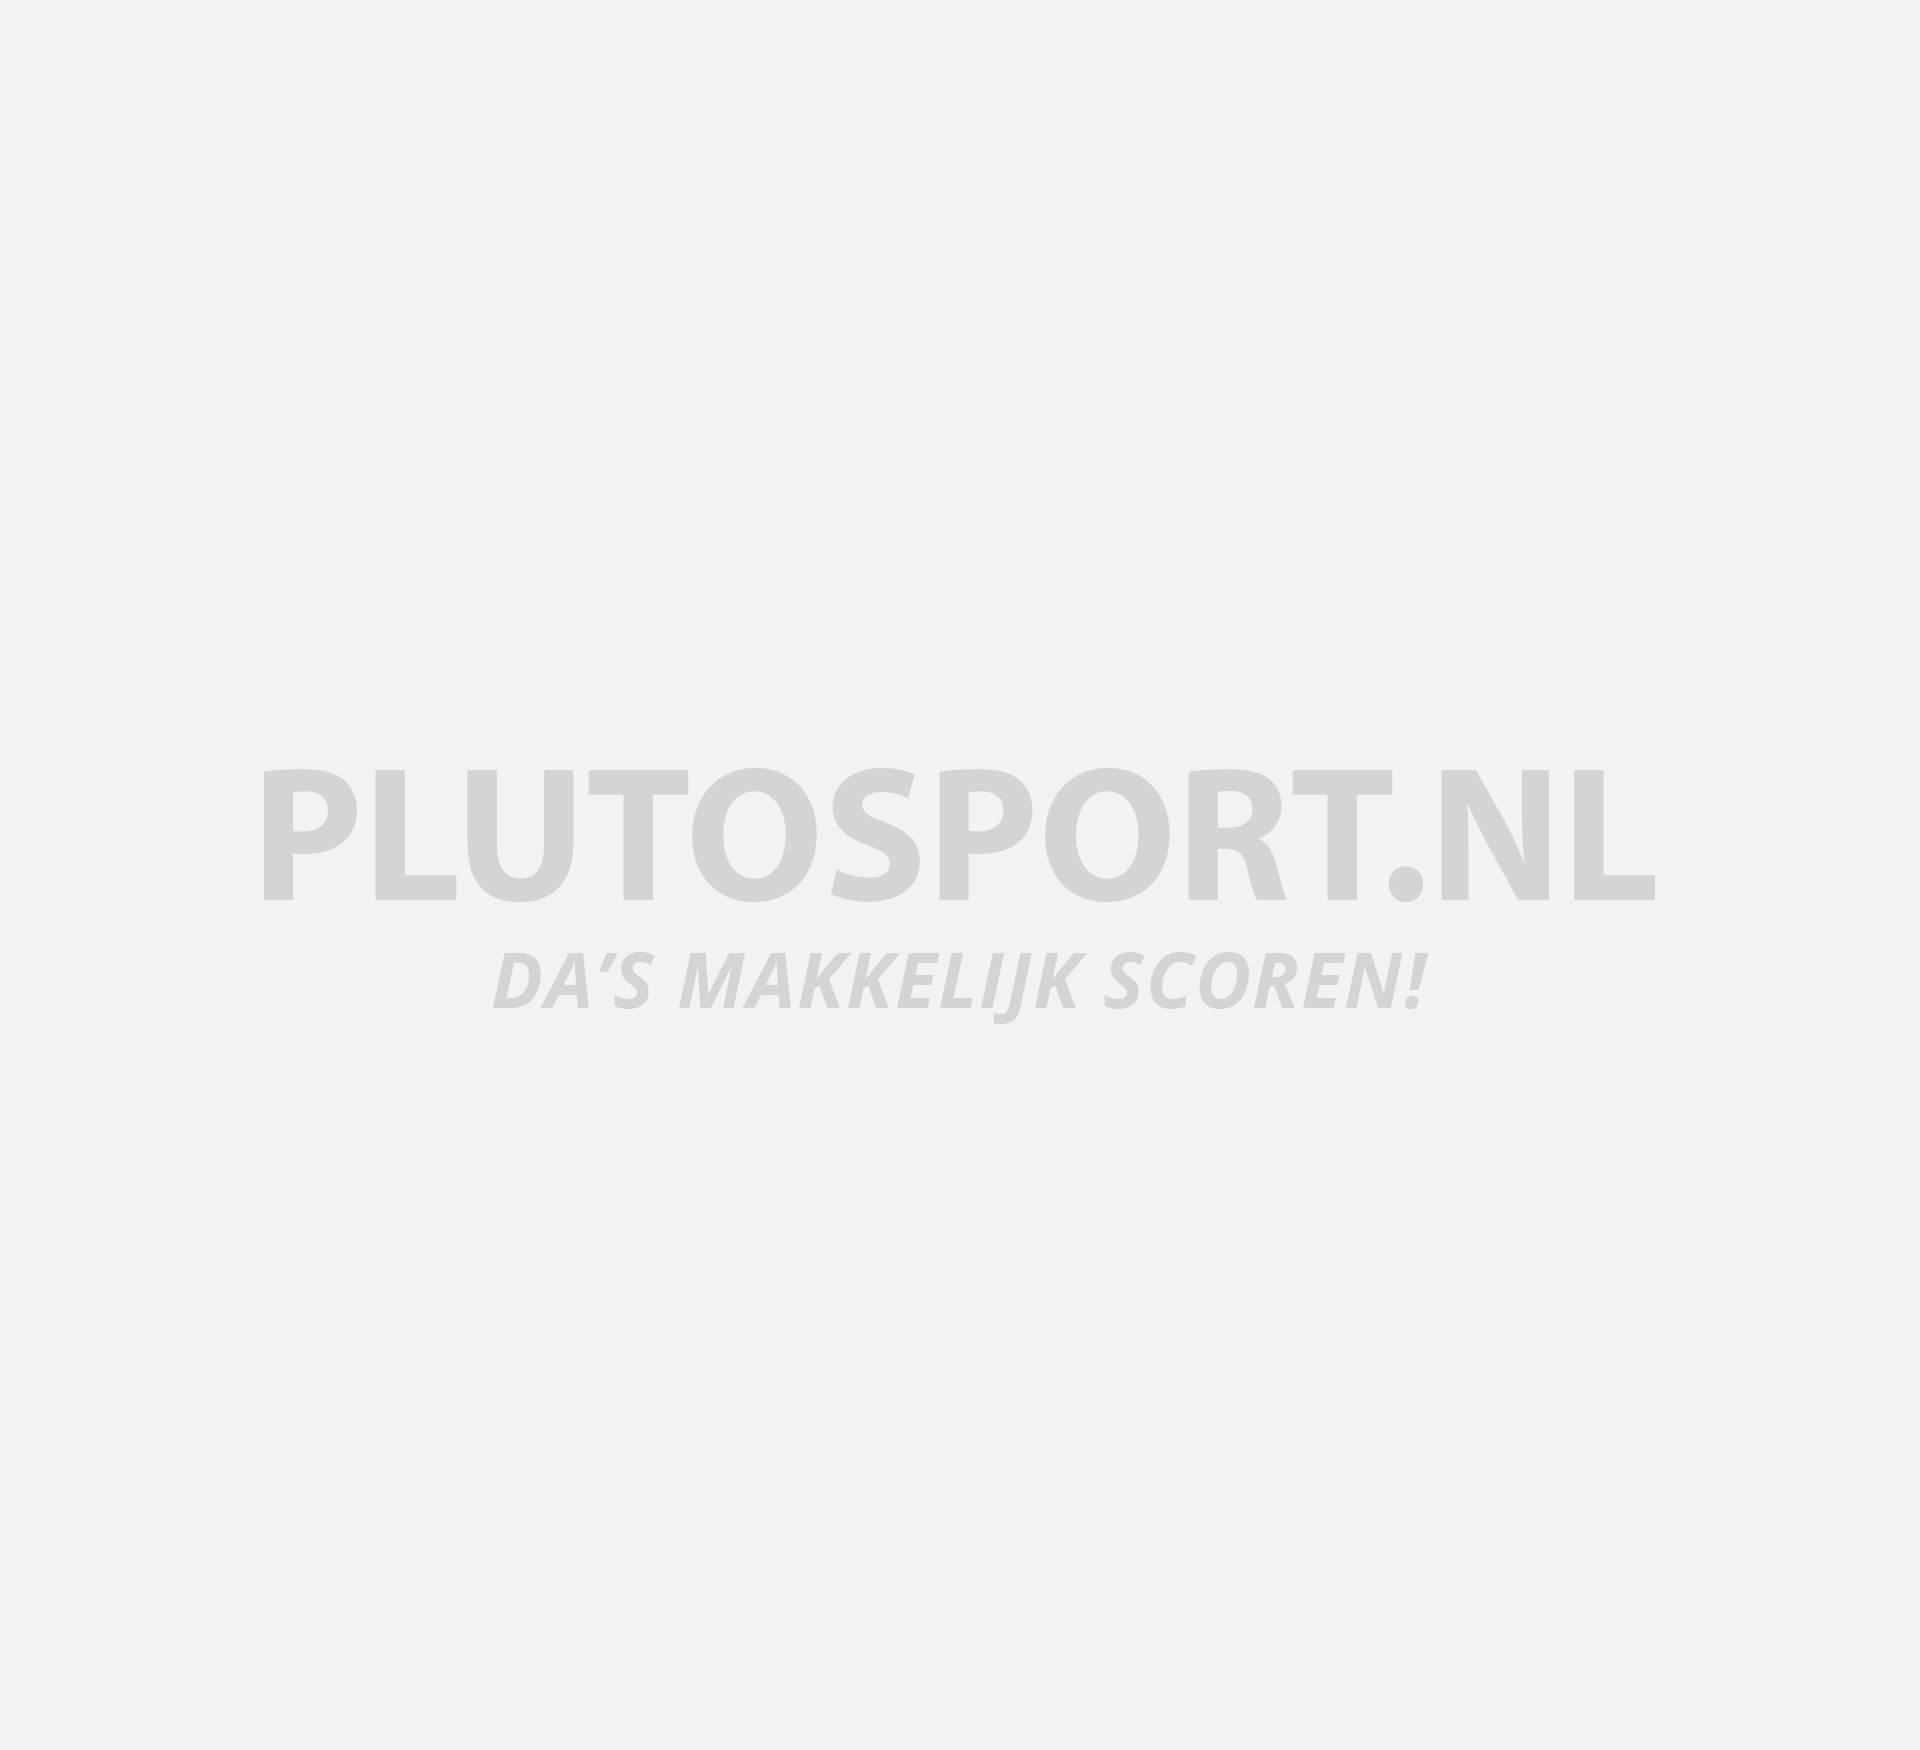 reputable site f6005 8ad2c Nike Air Force 1 High '07 LV8 Suede - Sneakers - Schoenen ...